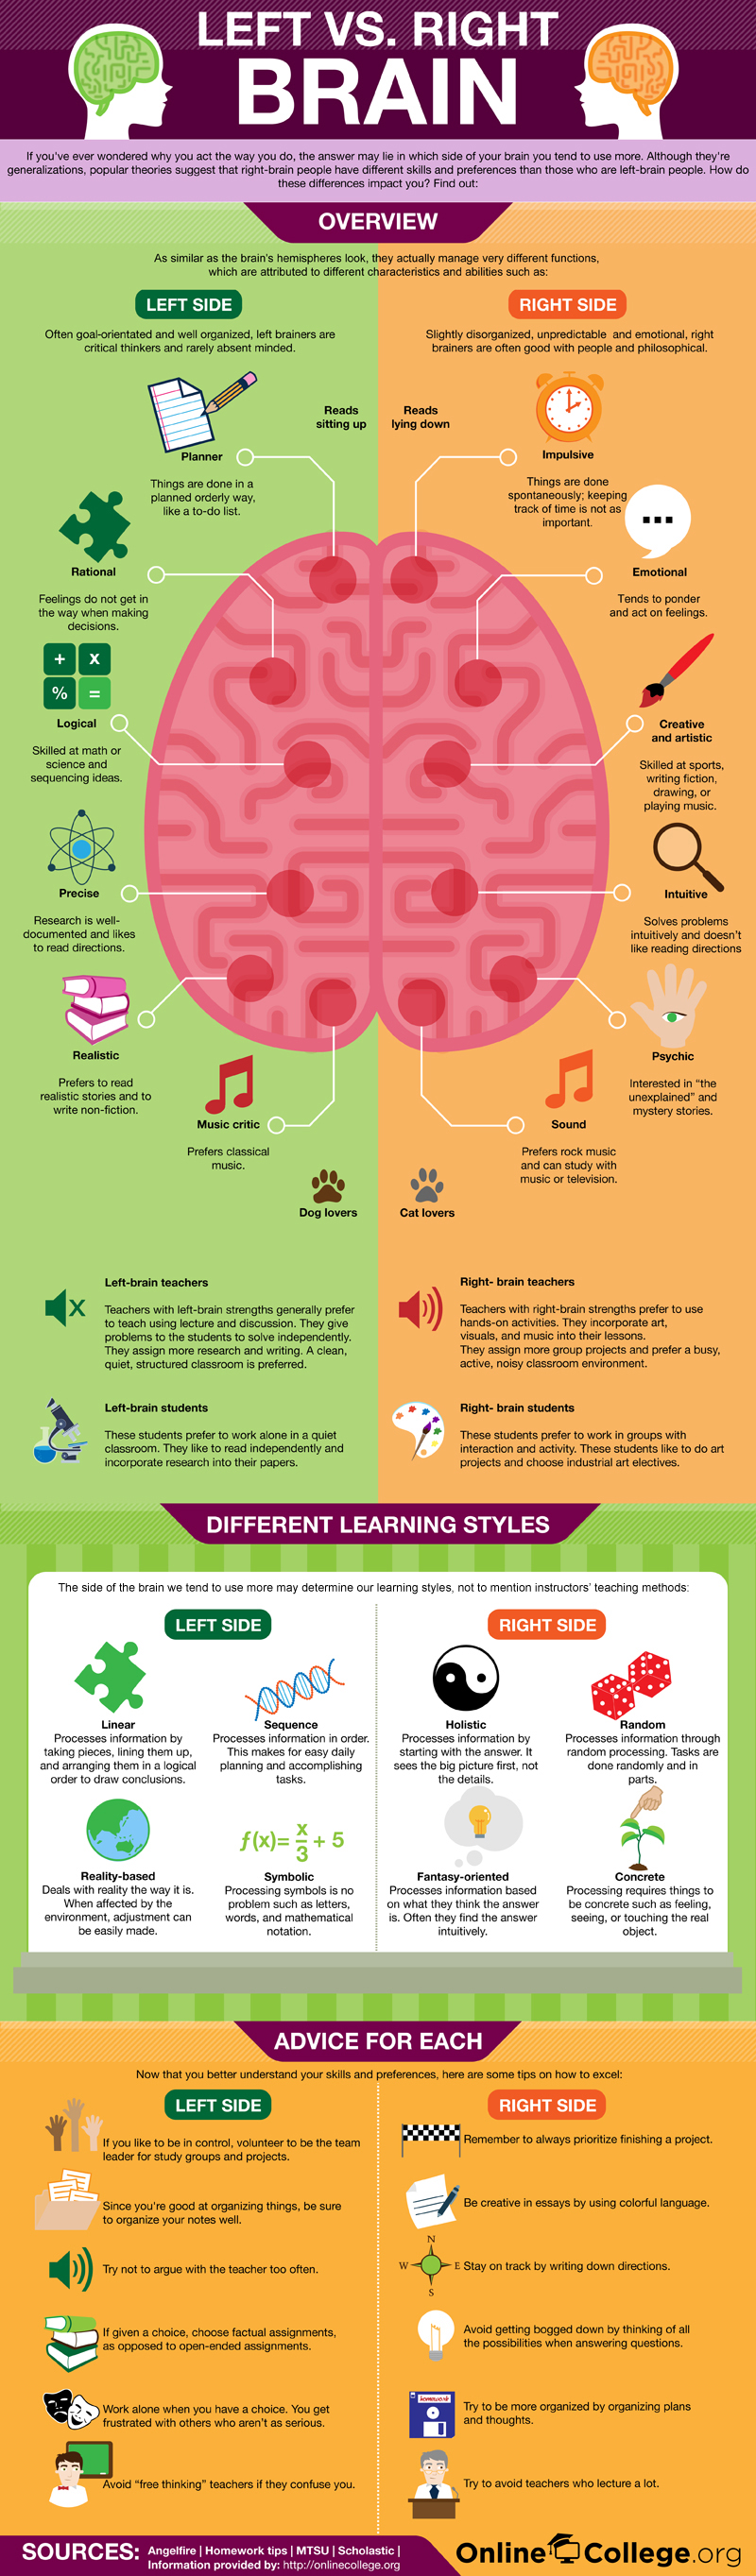 Left and Right Brain Infographic